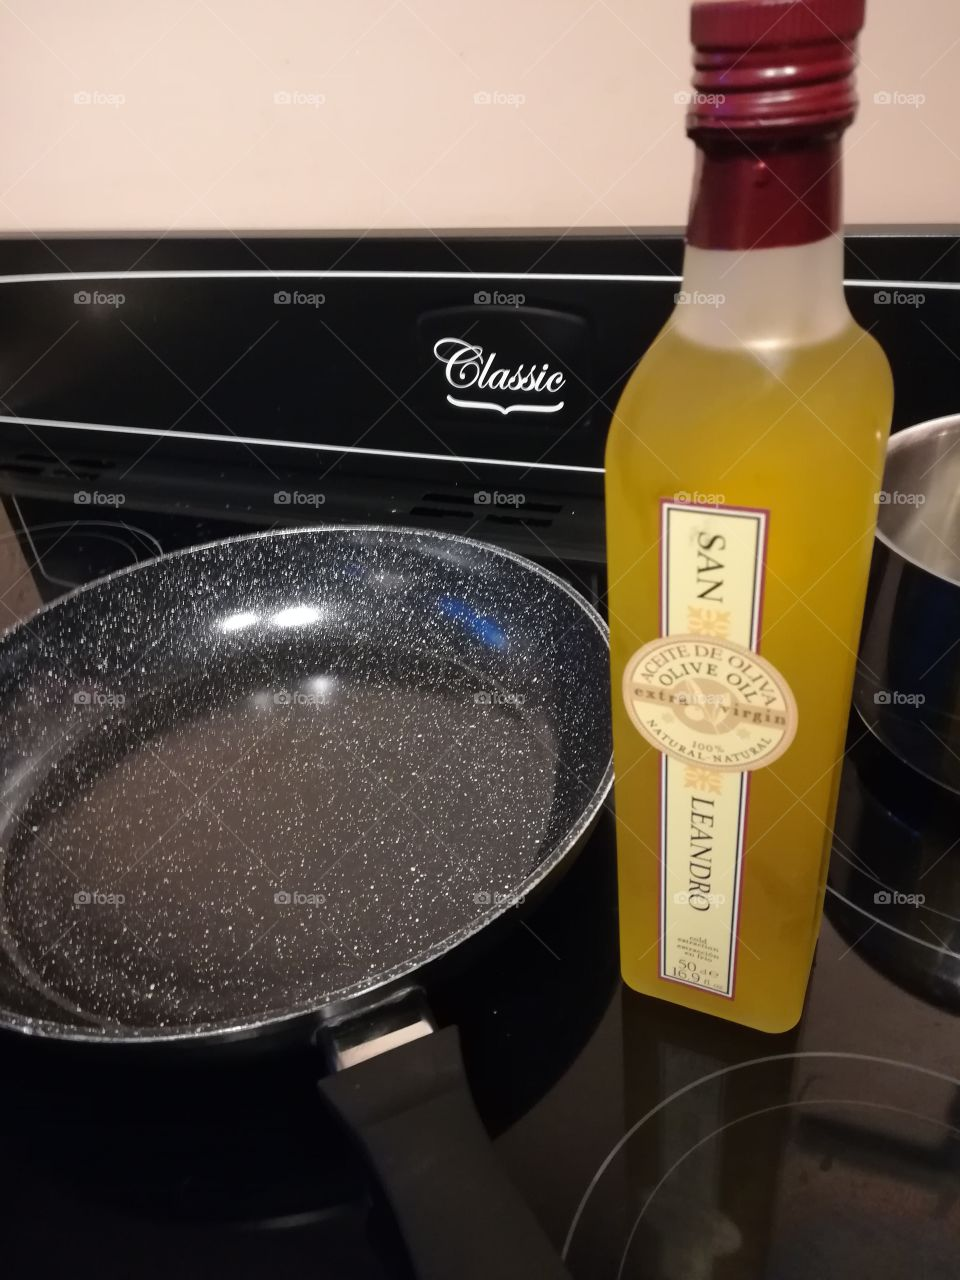 The best olive oil I've used so far